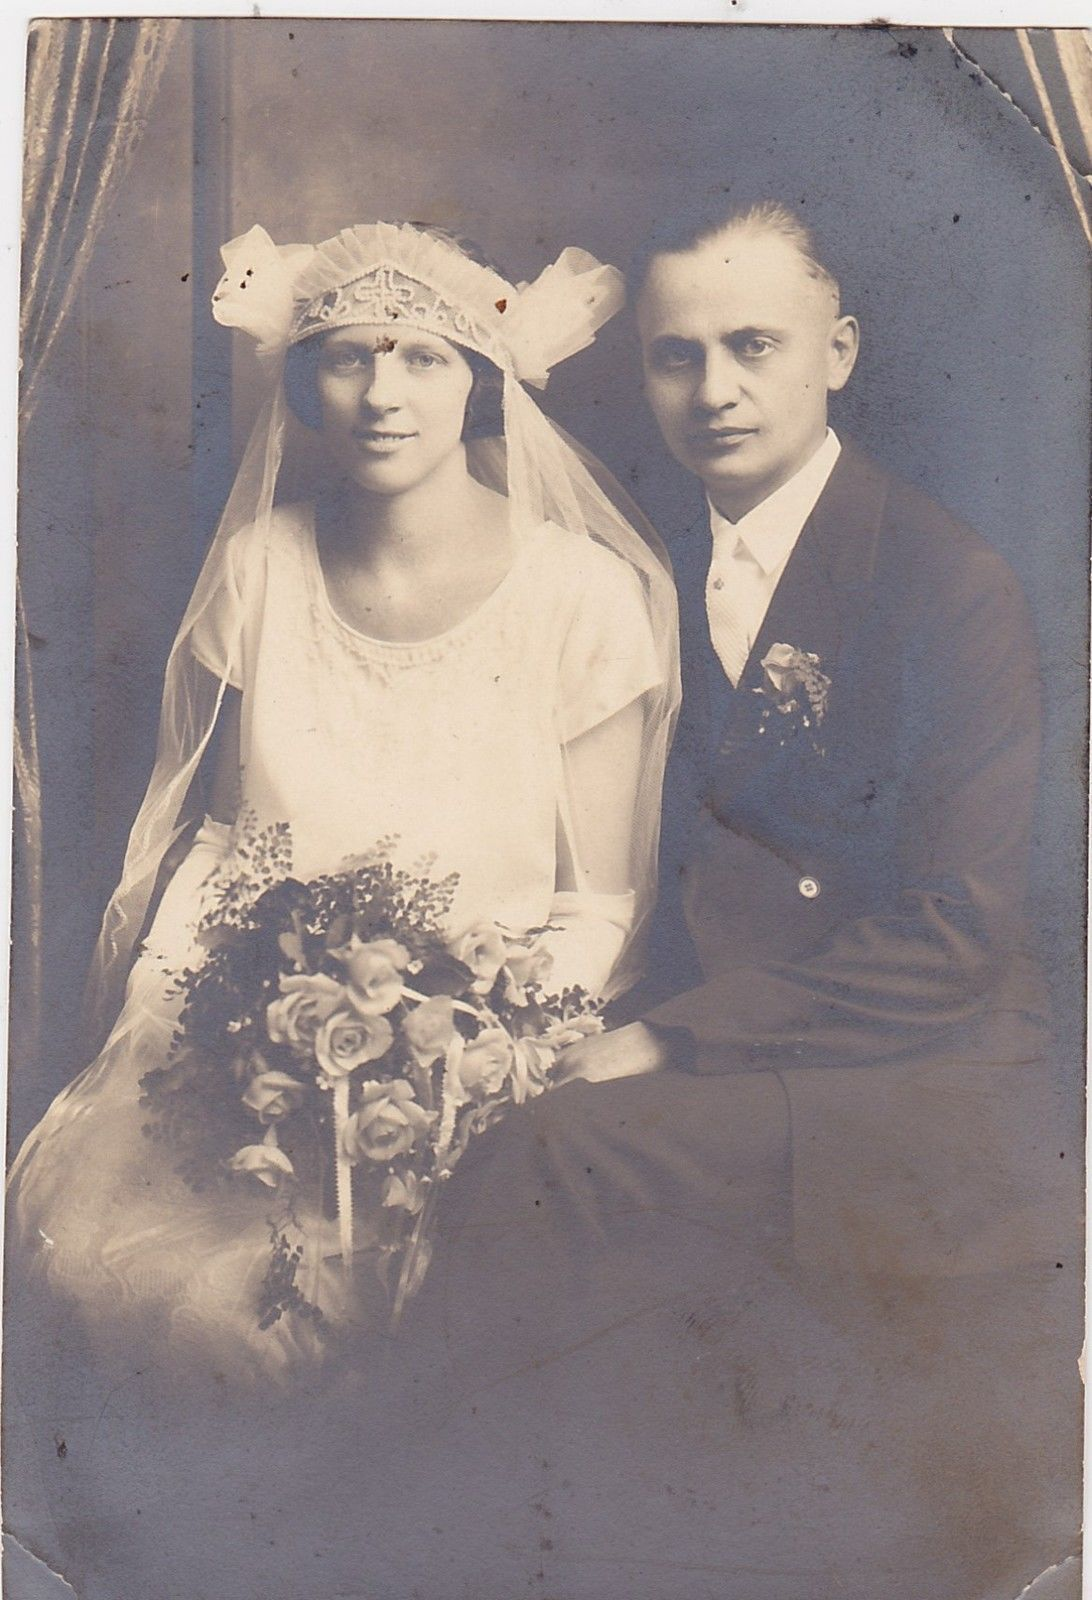 Vintage 6x4 Wedding Photo 355 Bride and Groom | eBay